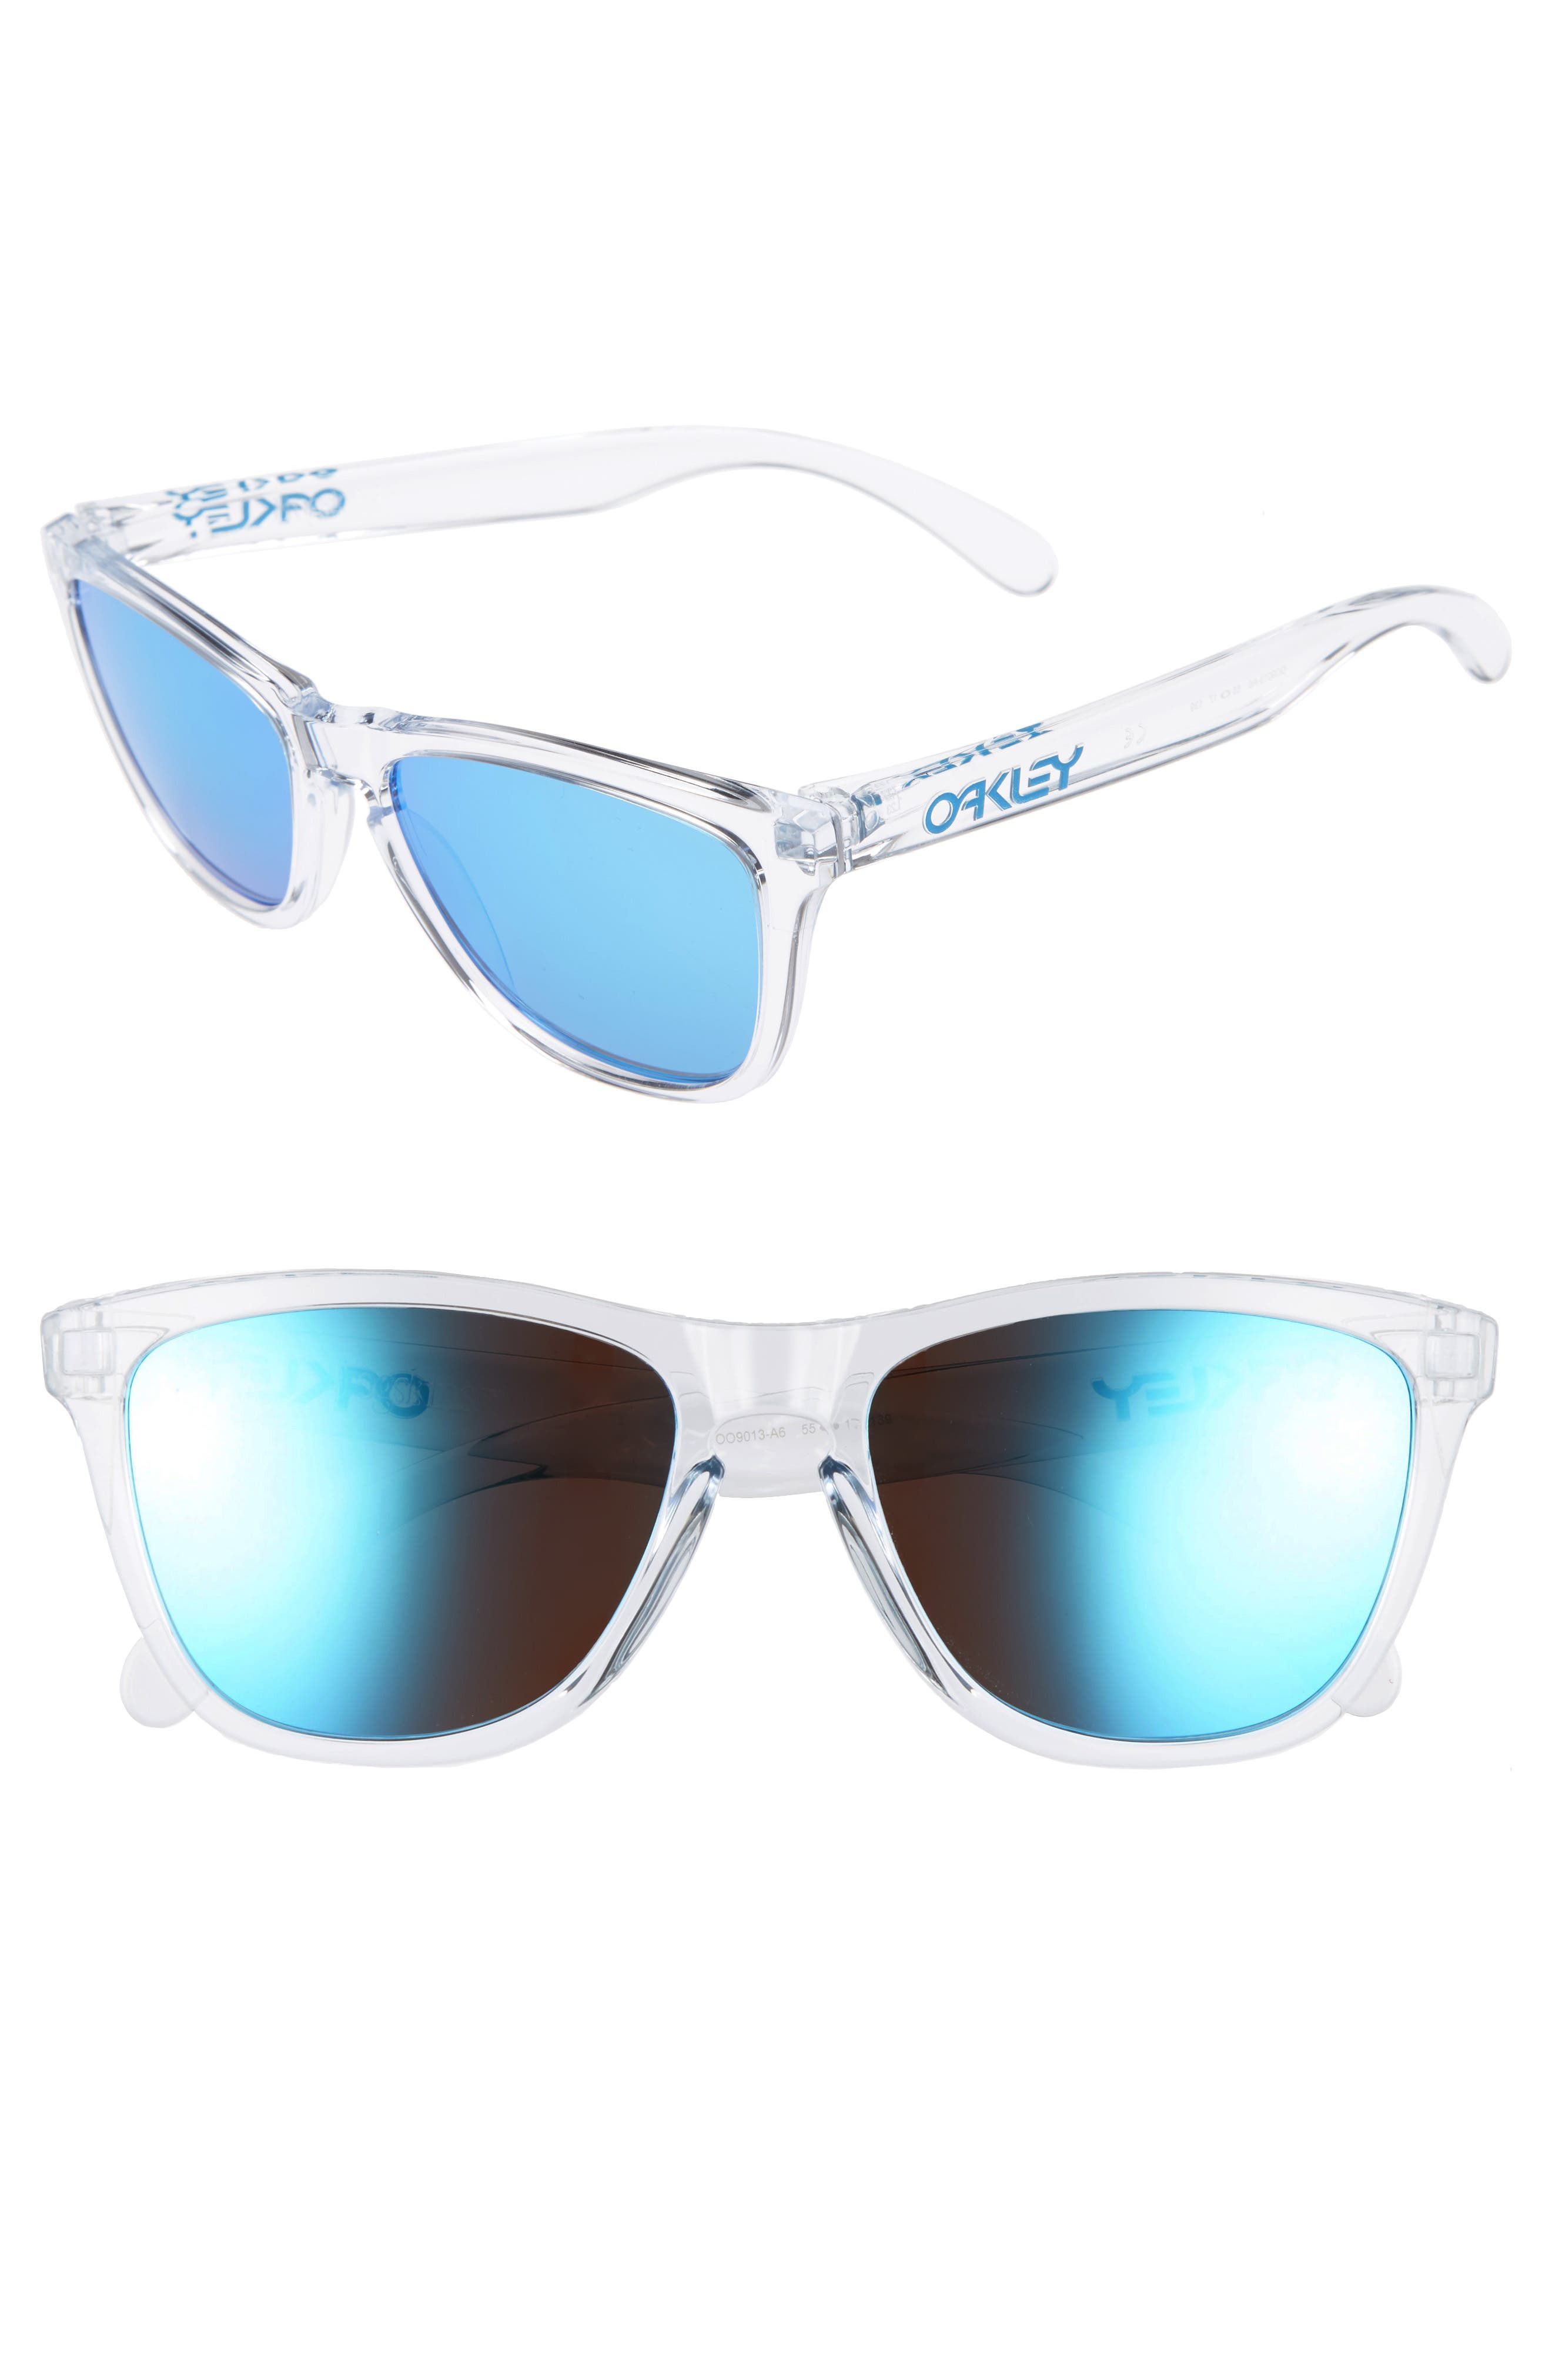 Frogskins<sup>®</sup> 55mm Sunglasses,                         Main,                         color, Sapphire Iridescent